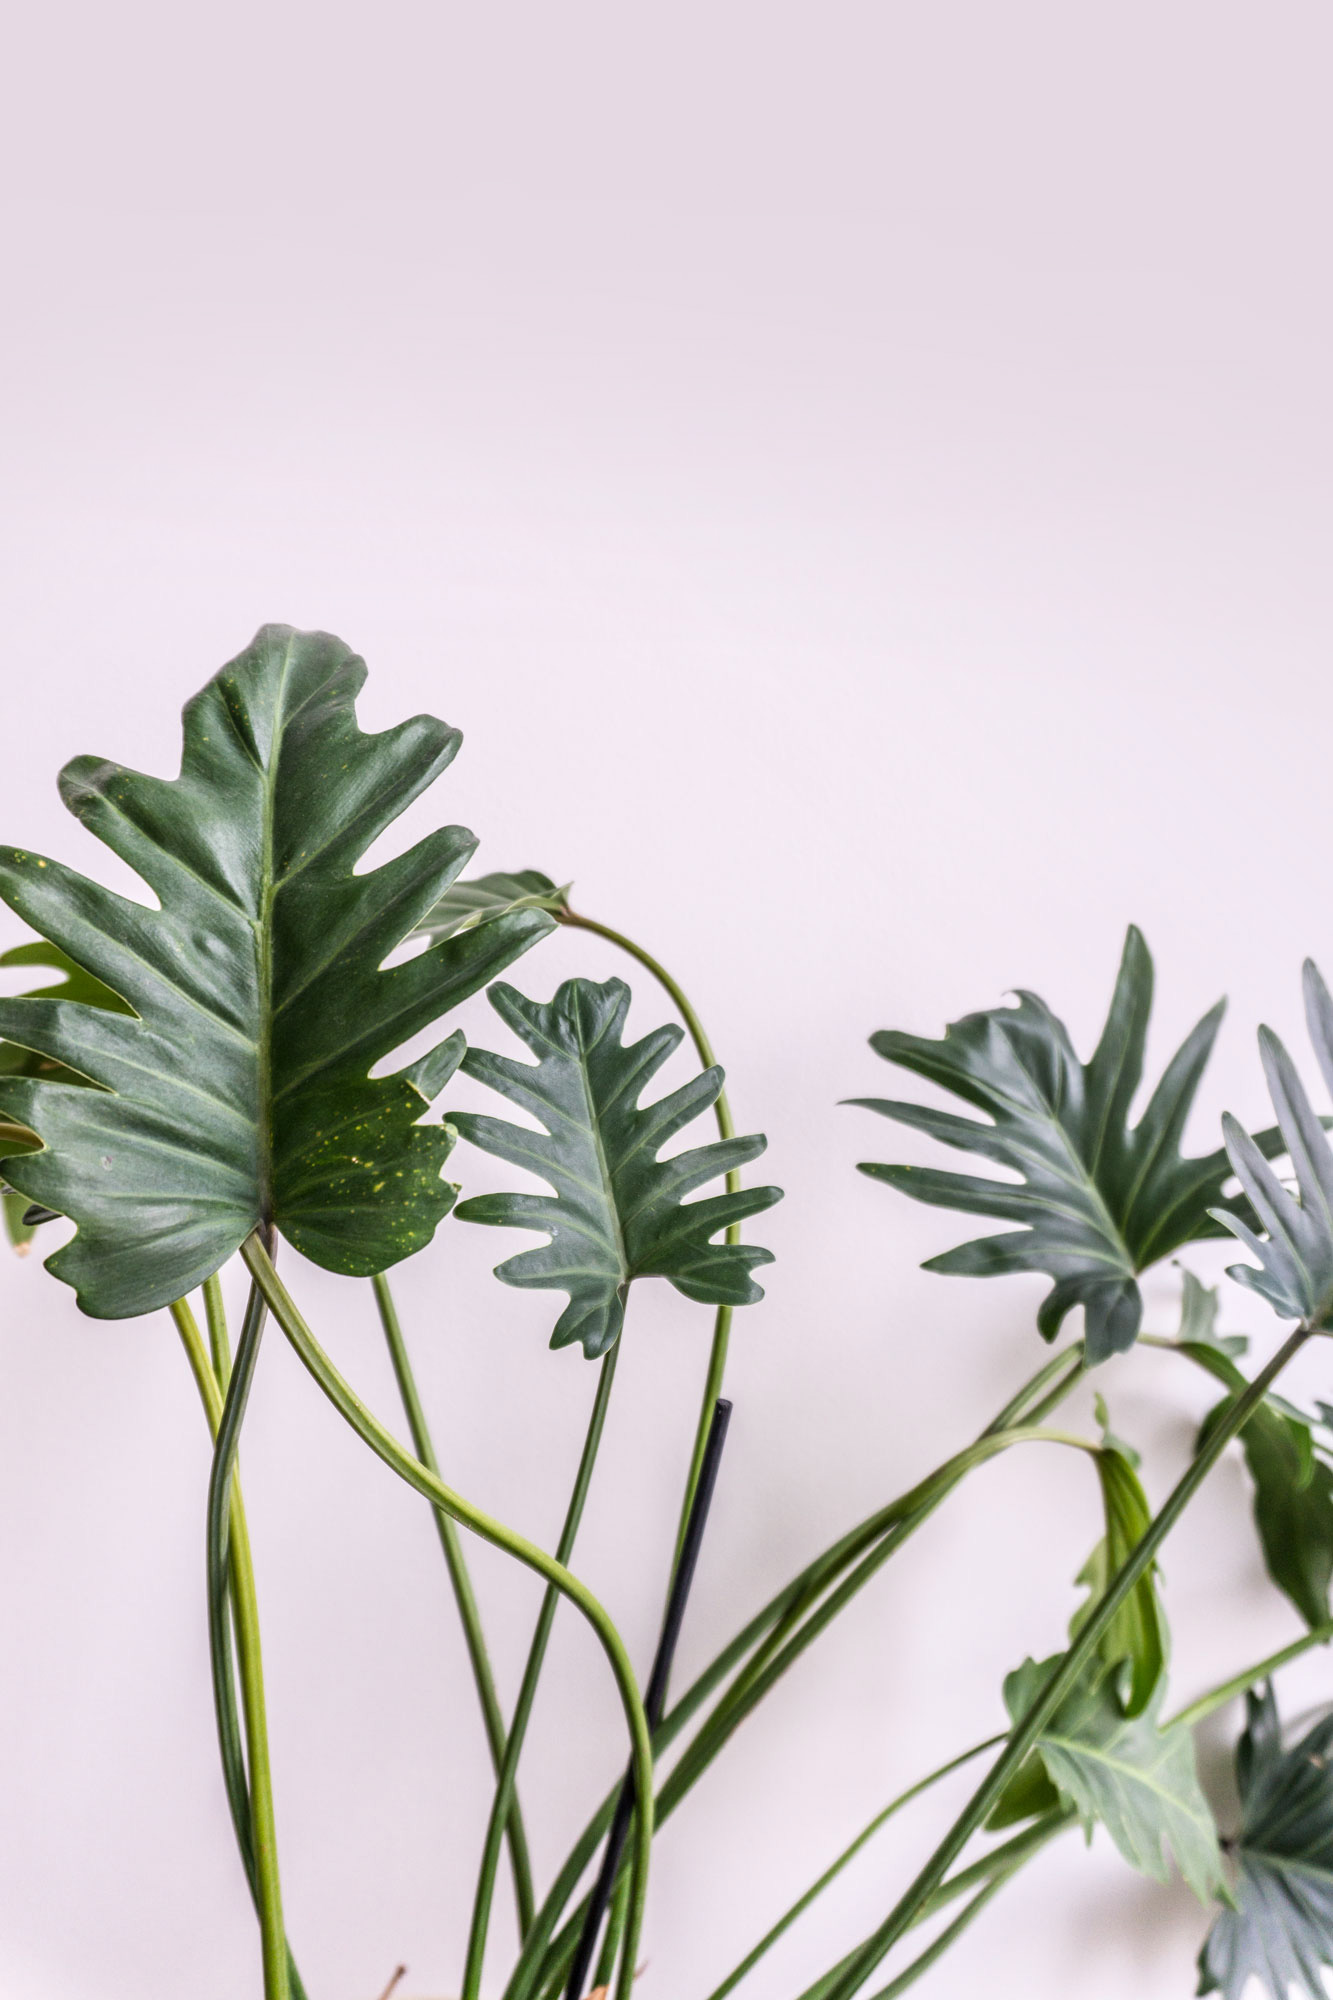 philodendron xanadu care instructions